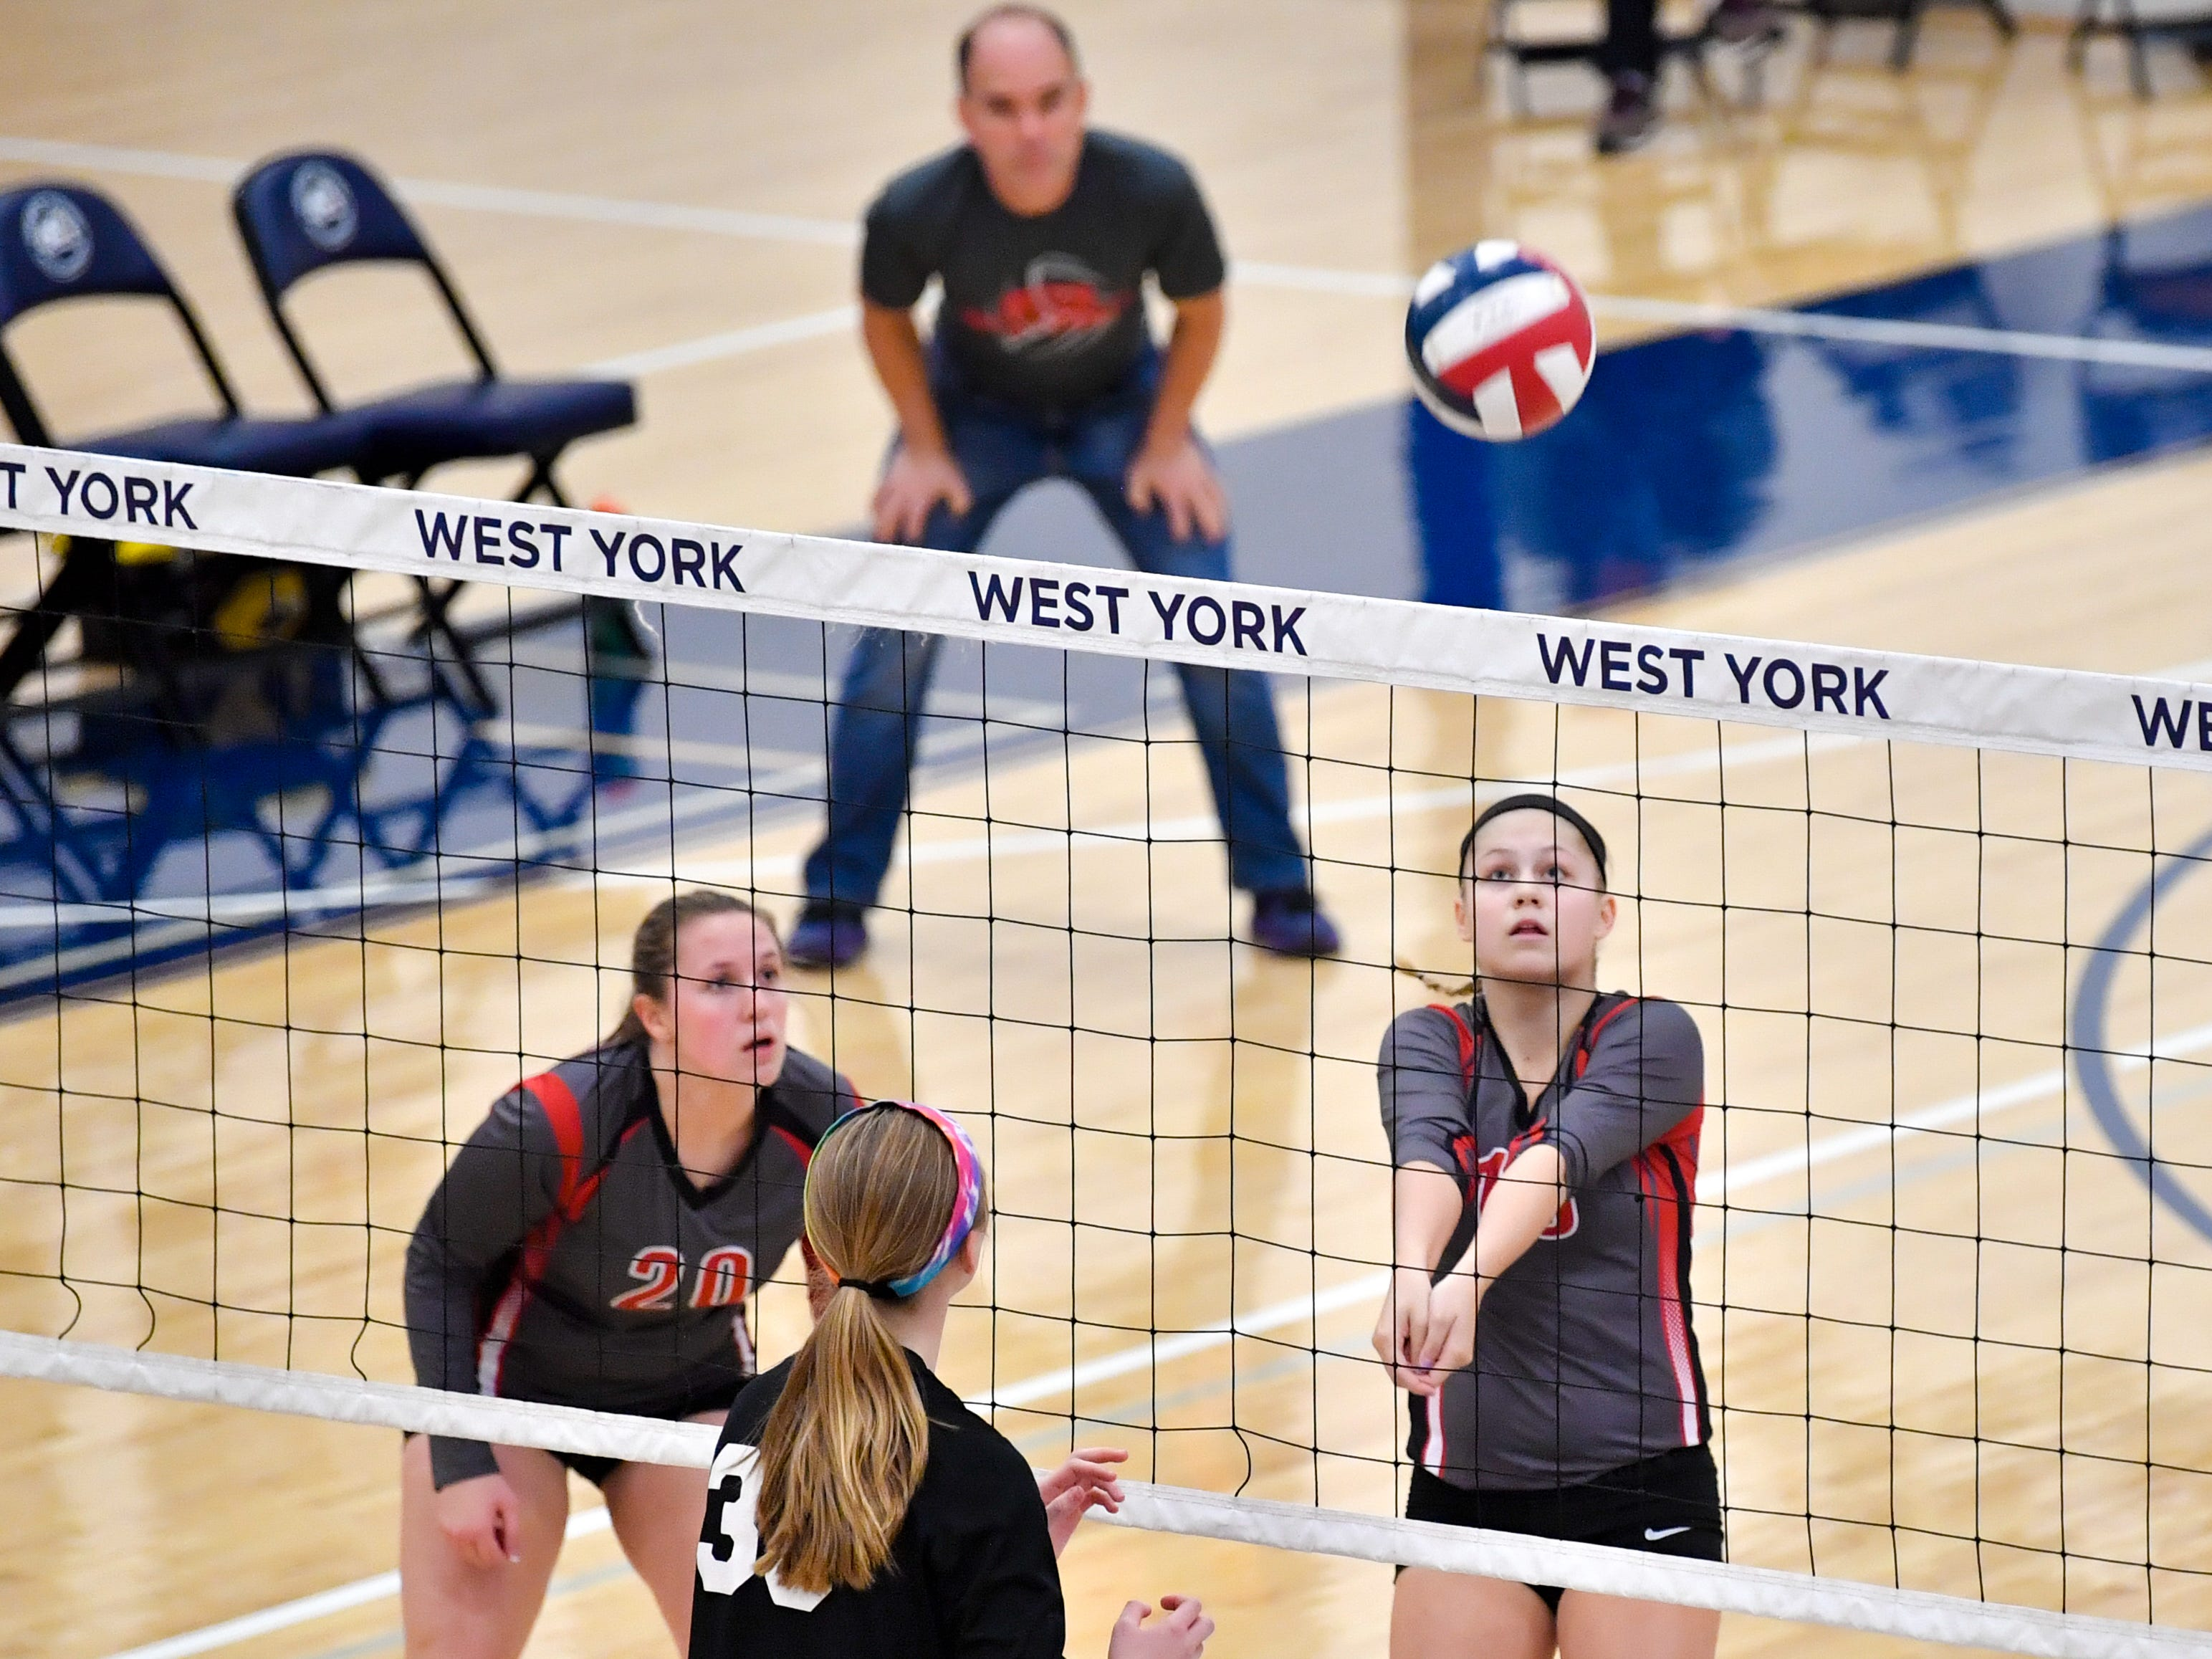 Abby Diehl (15) sends the ball over the net during the District 3 Class 3A girls' volleyball quarterfinals between Dover and York Suburban at West York High School, October 30, 2018. The Eagles defeated the Trojans 3-2.